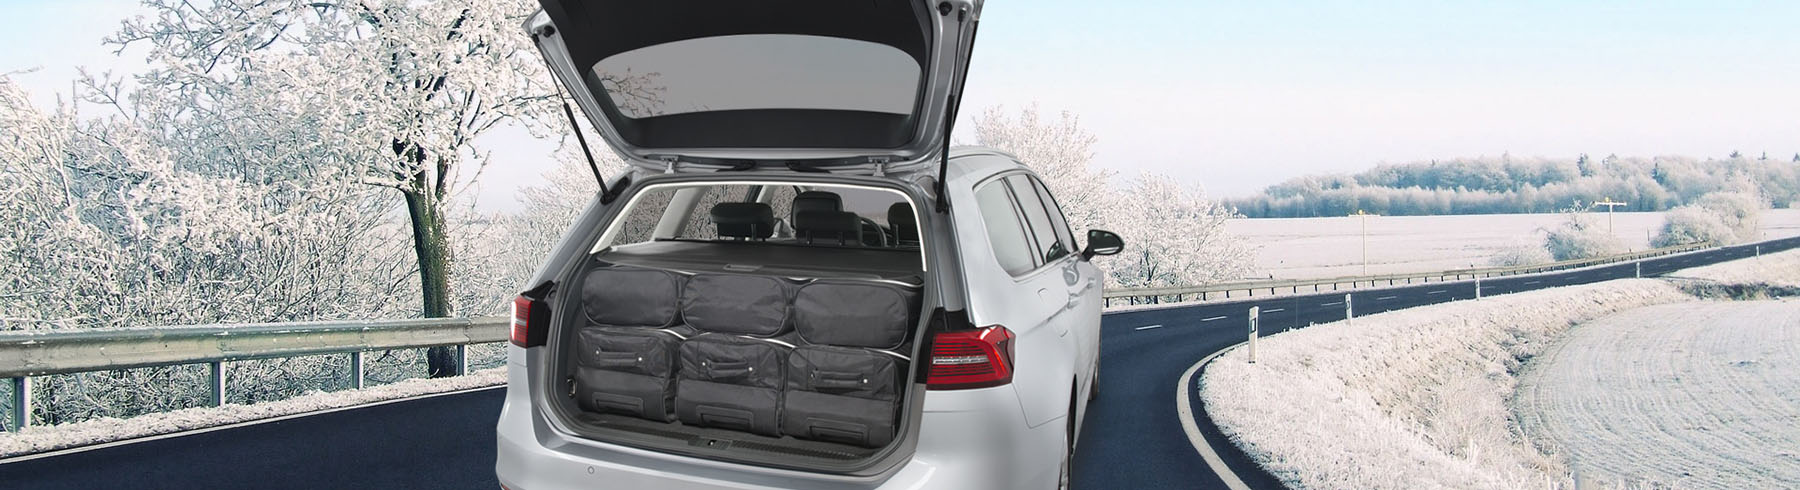 car-bags-new-design-winter-3